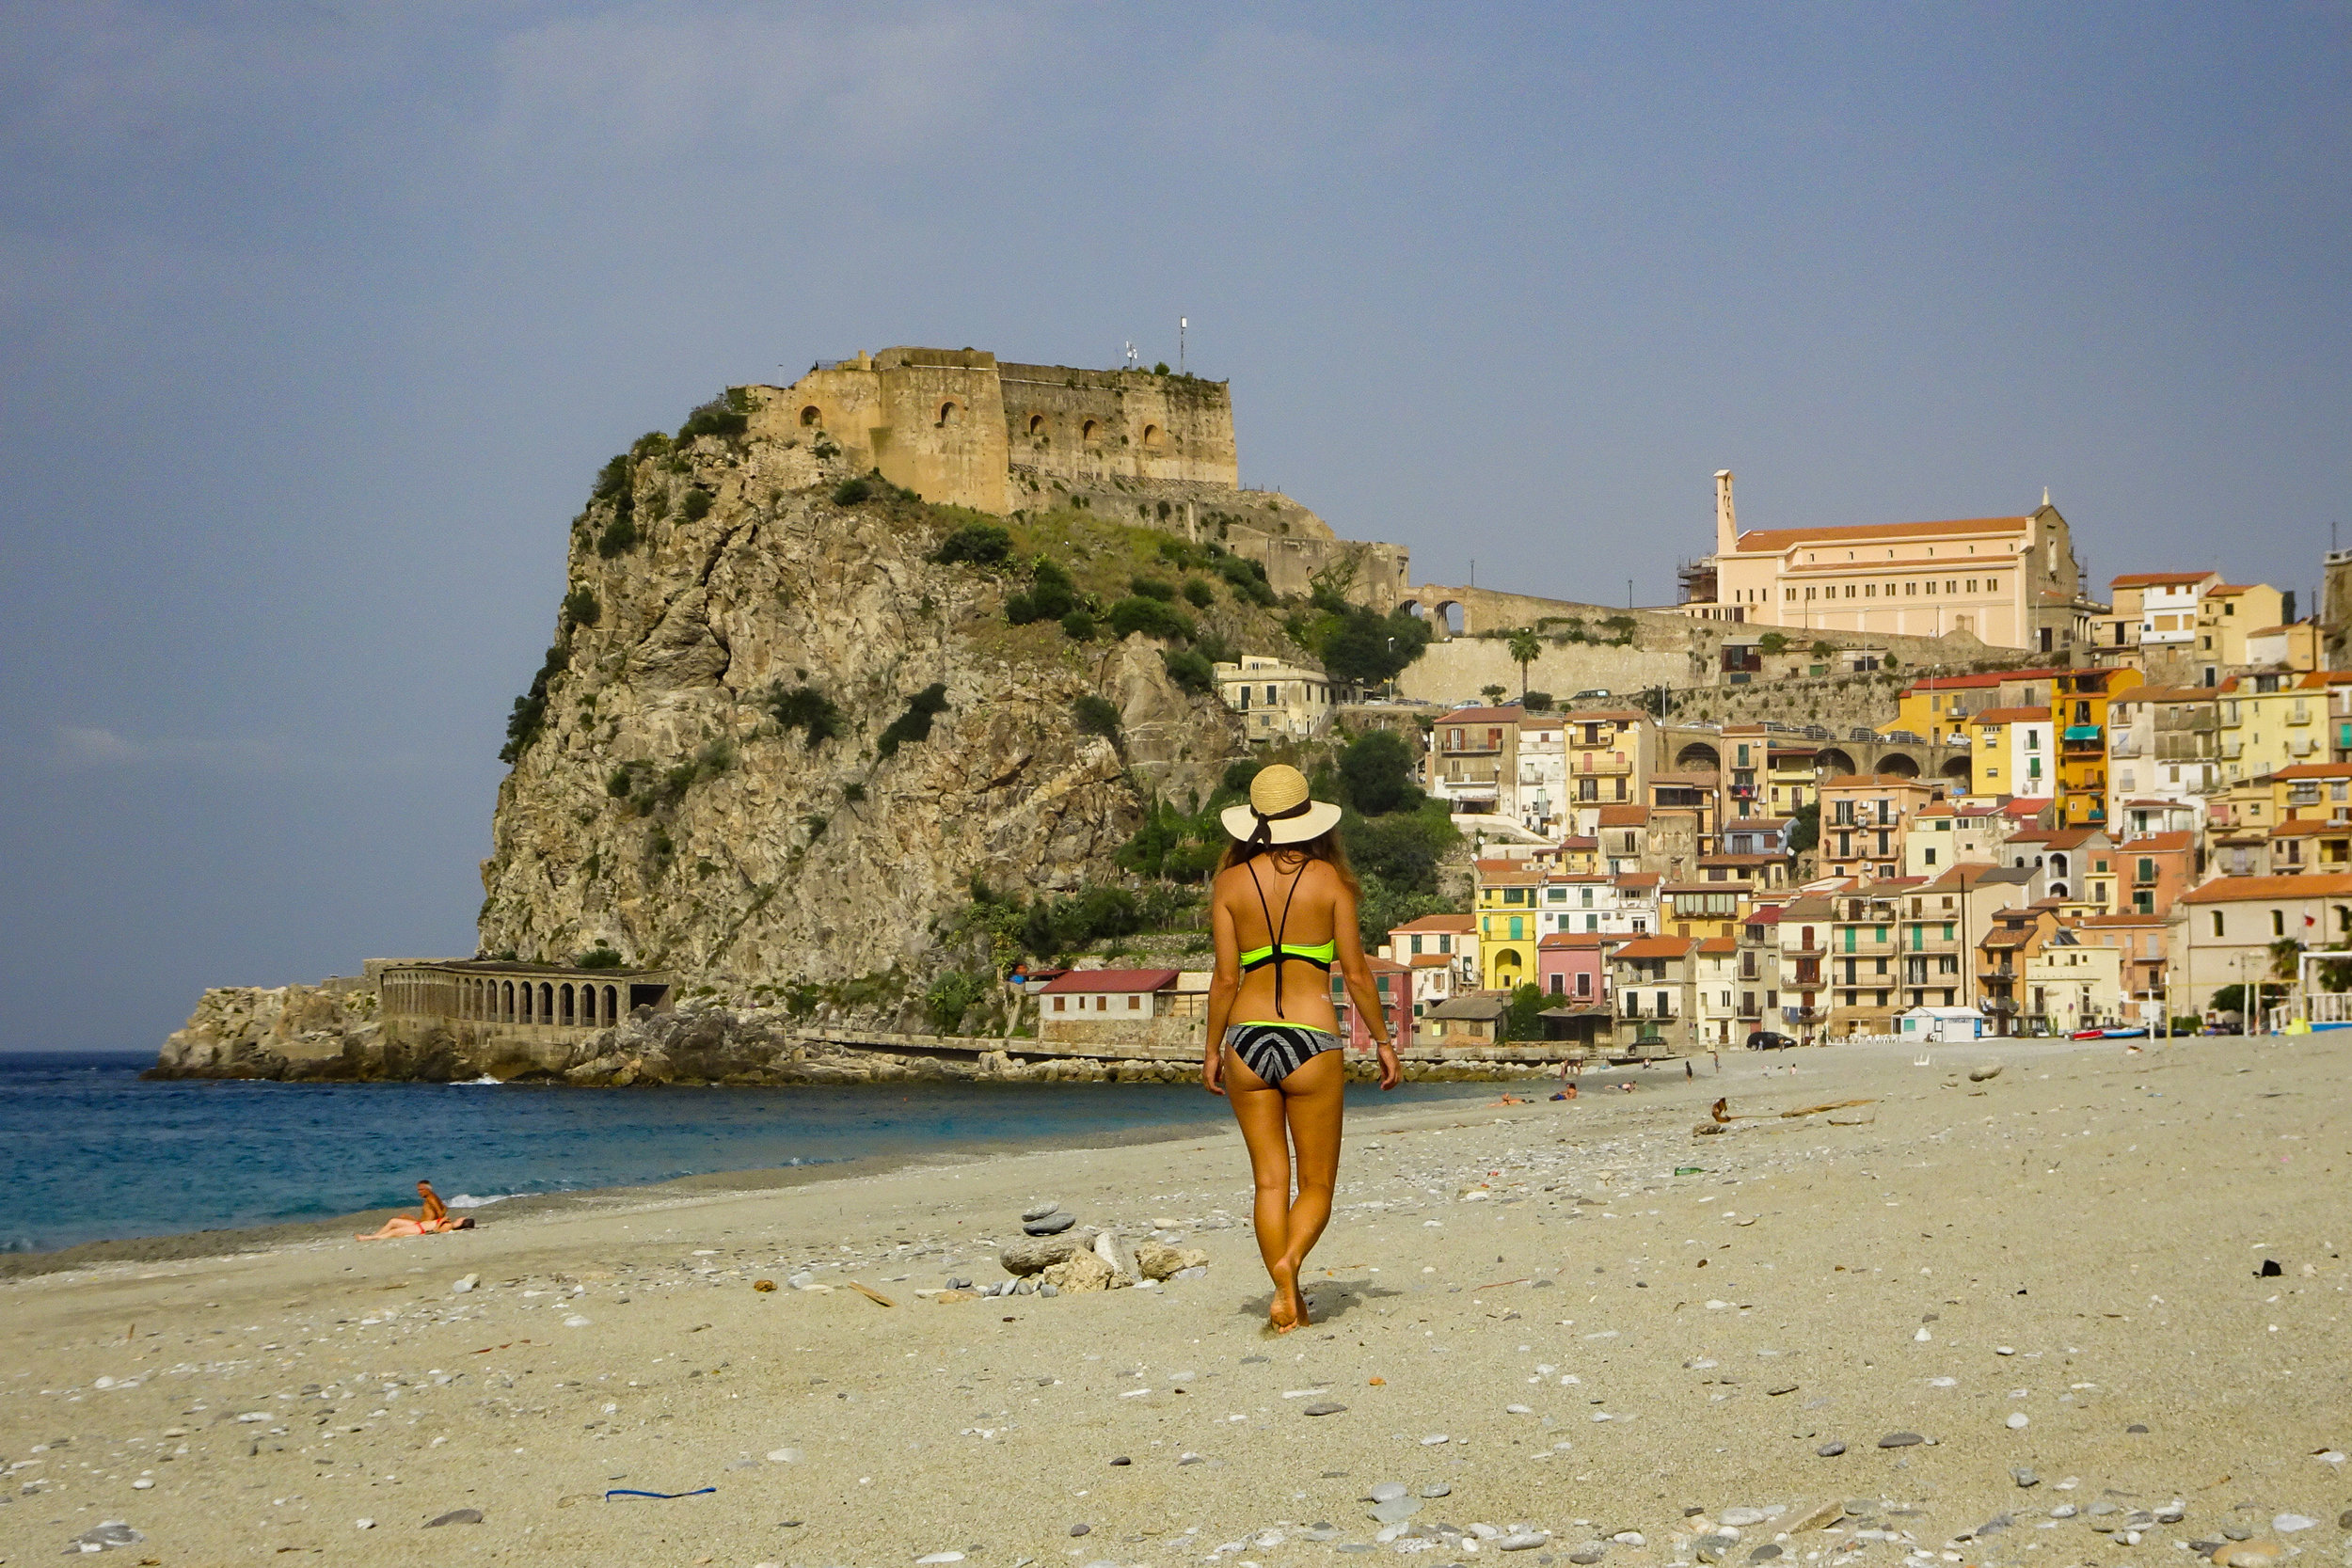 3.)Scilla, Italy - Our favourite beachside spot in all of Italy. The free showers on the beach are the icing on the cake.